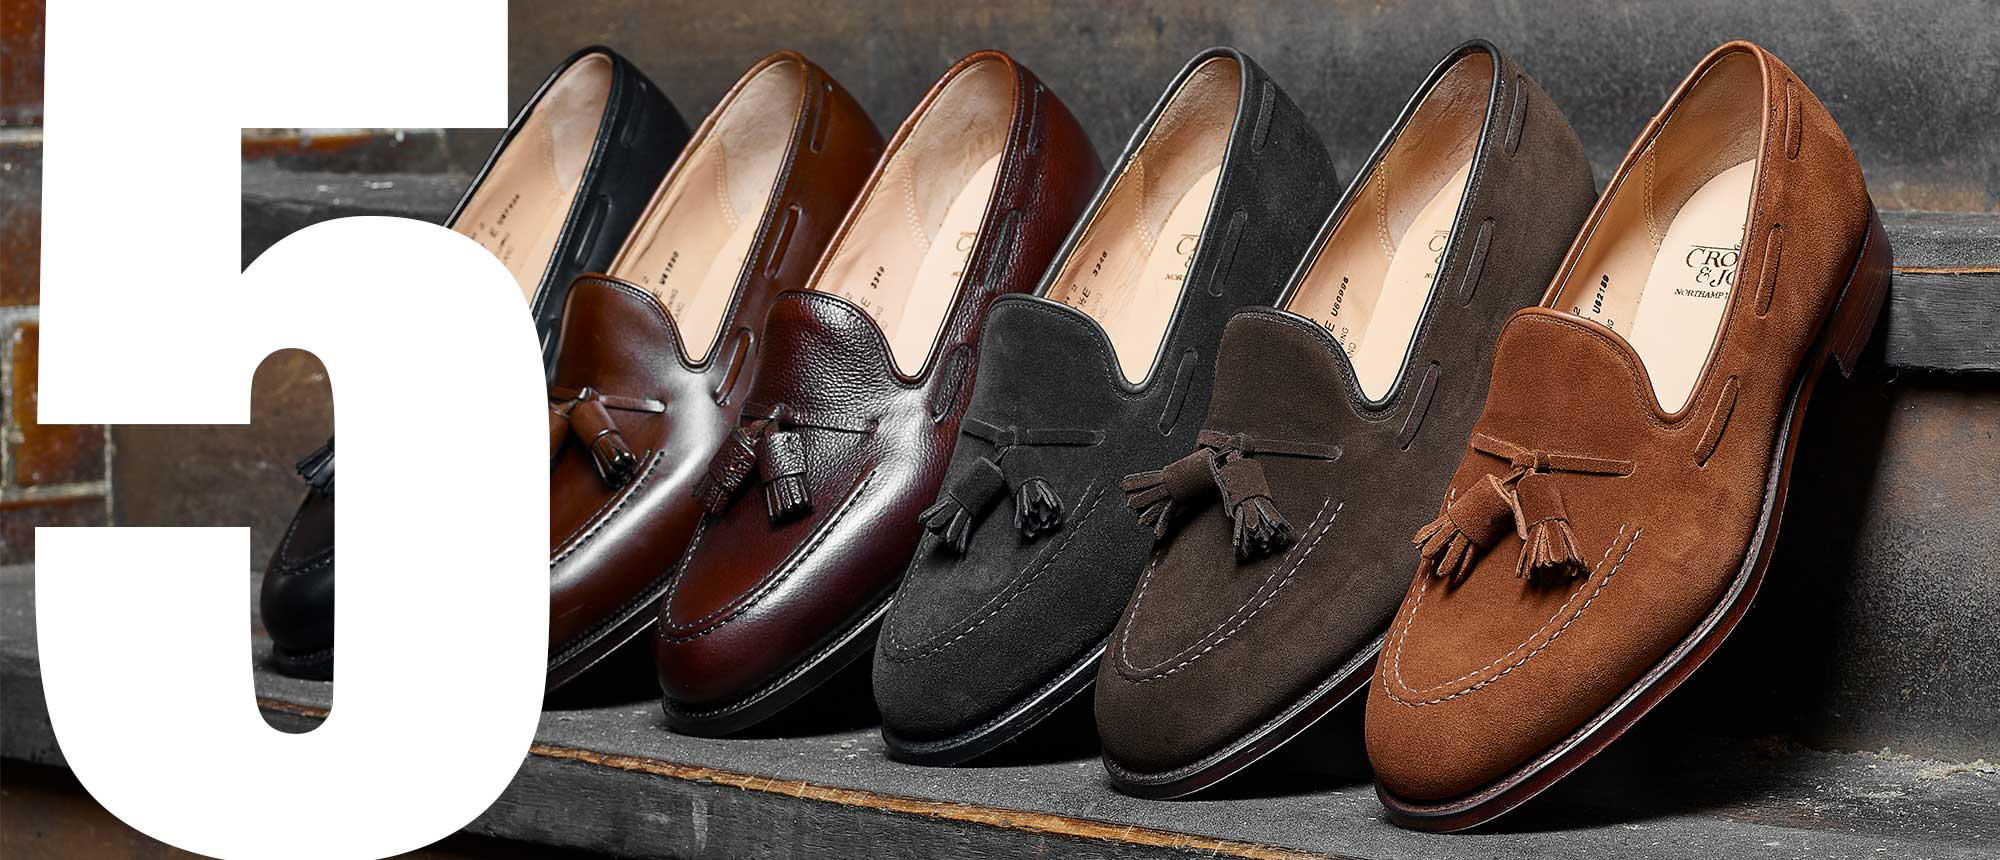 Crockett & Jones - Top 5 Men's Loafers